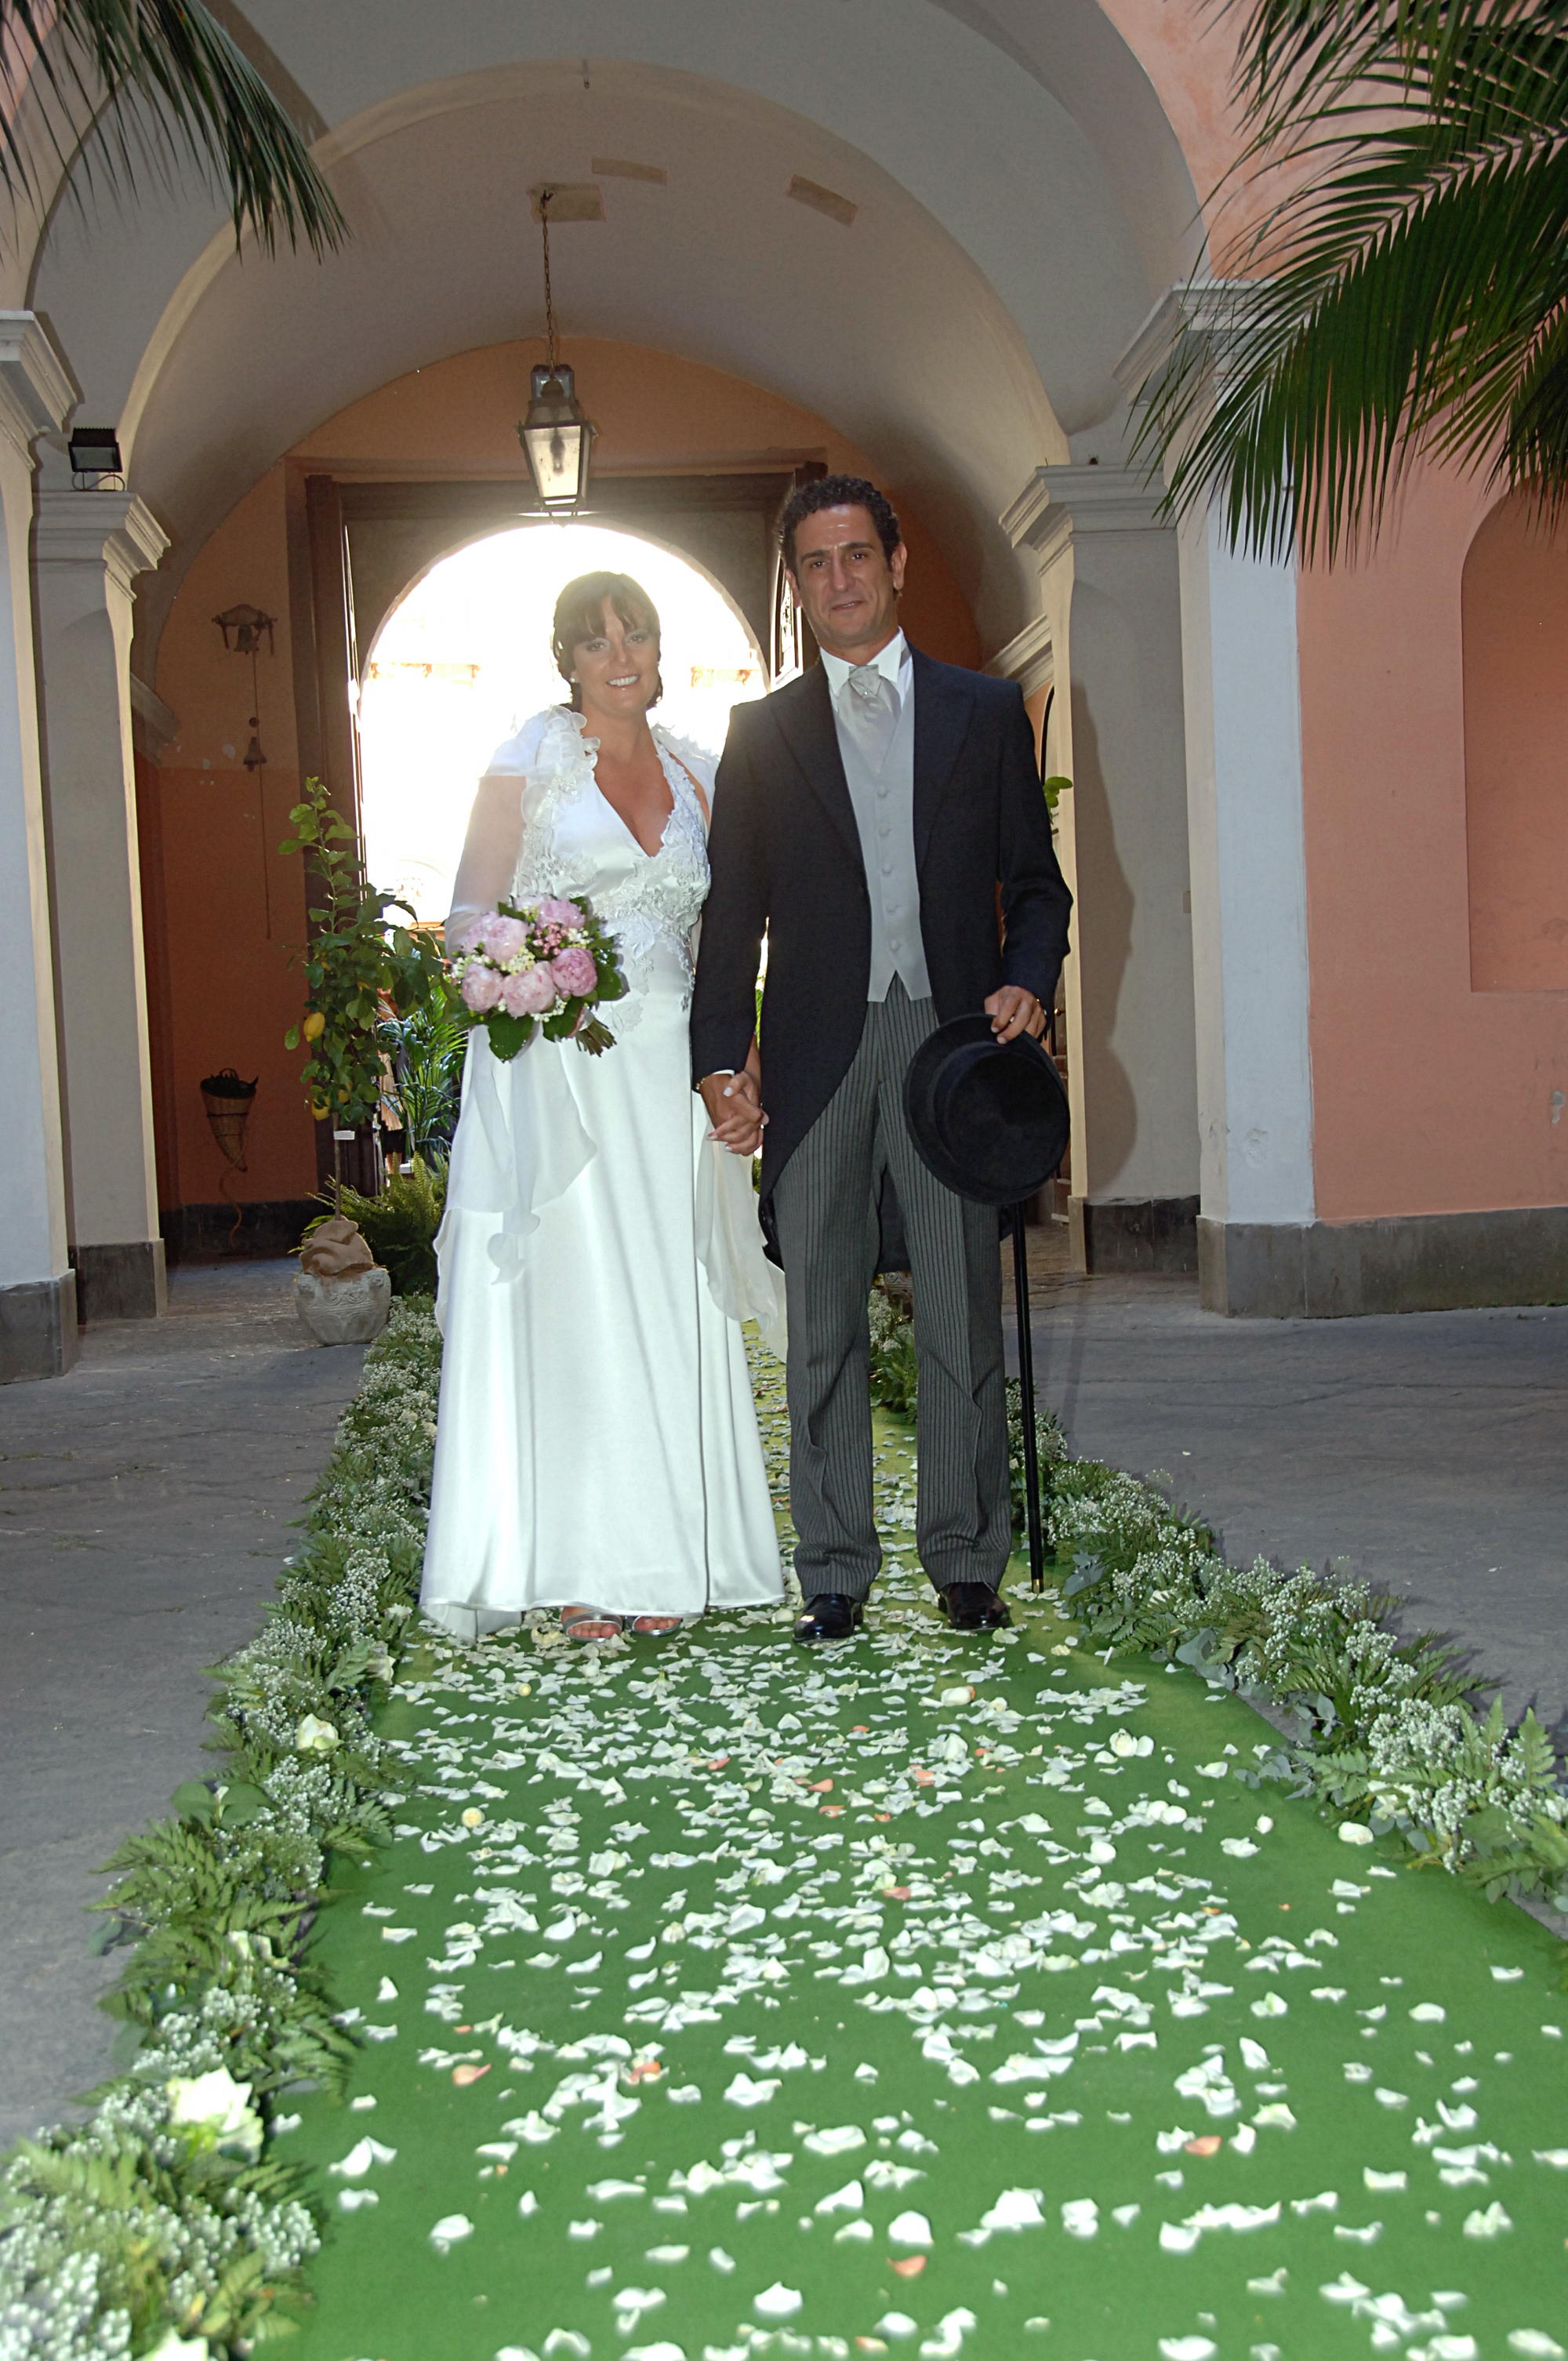 http://www.weddingamalfi.com/wp-content/uploads/Enza-and-Mario-green-aisle-runner.jpg